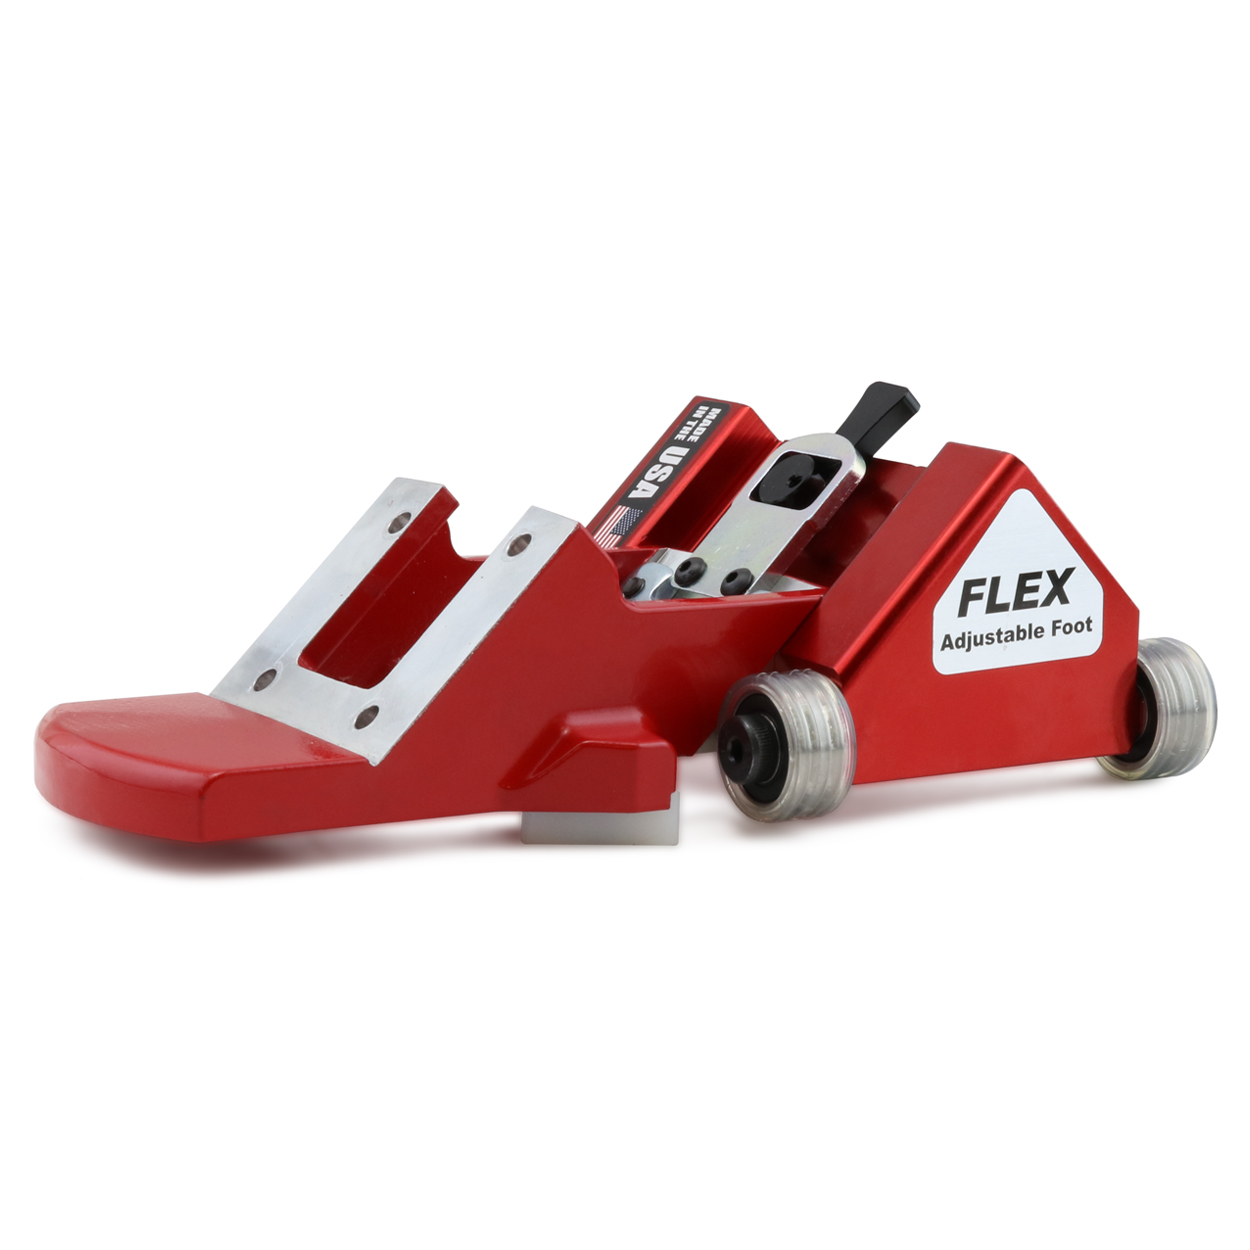 FLEX Power Roller Conversion Kit (50P)